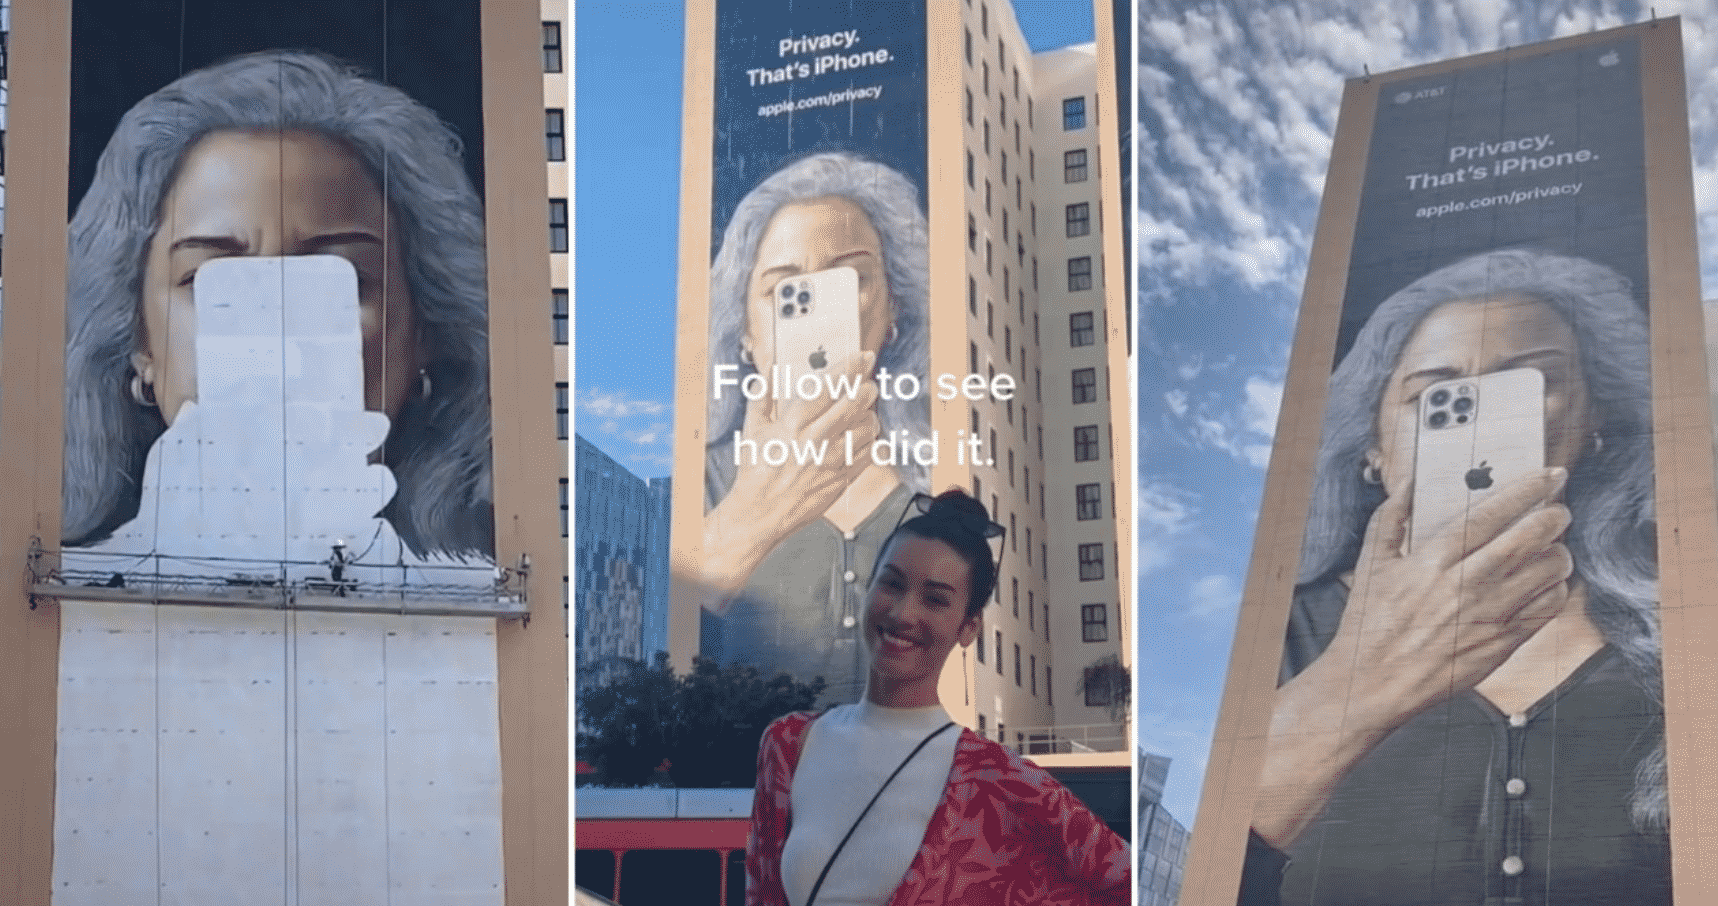 It took 4 artists and a week to complete the hand-painted 'Privacy' Apple mural